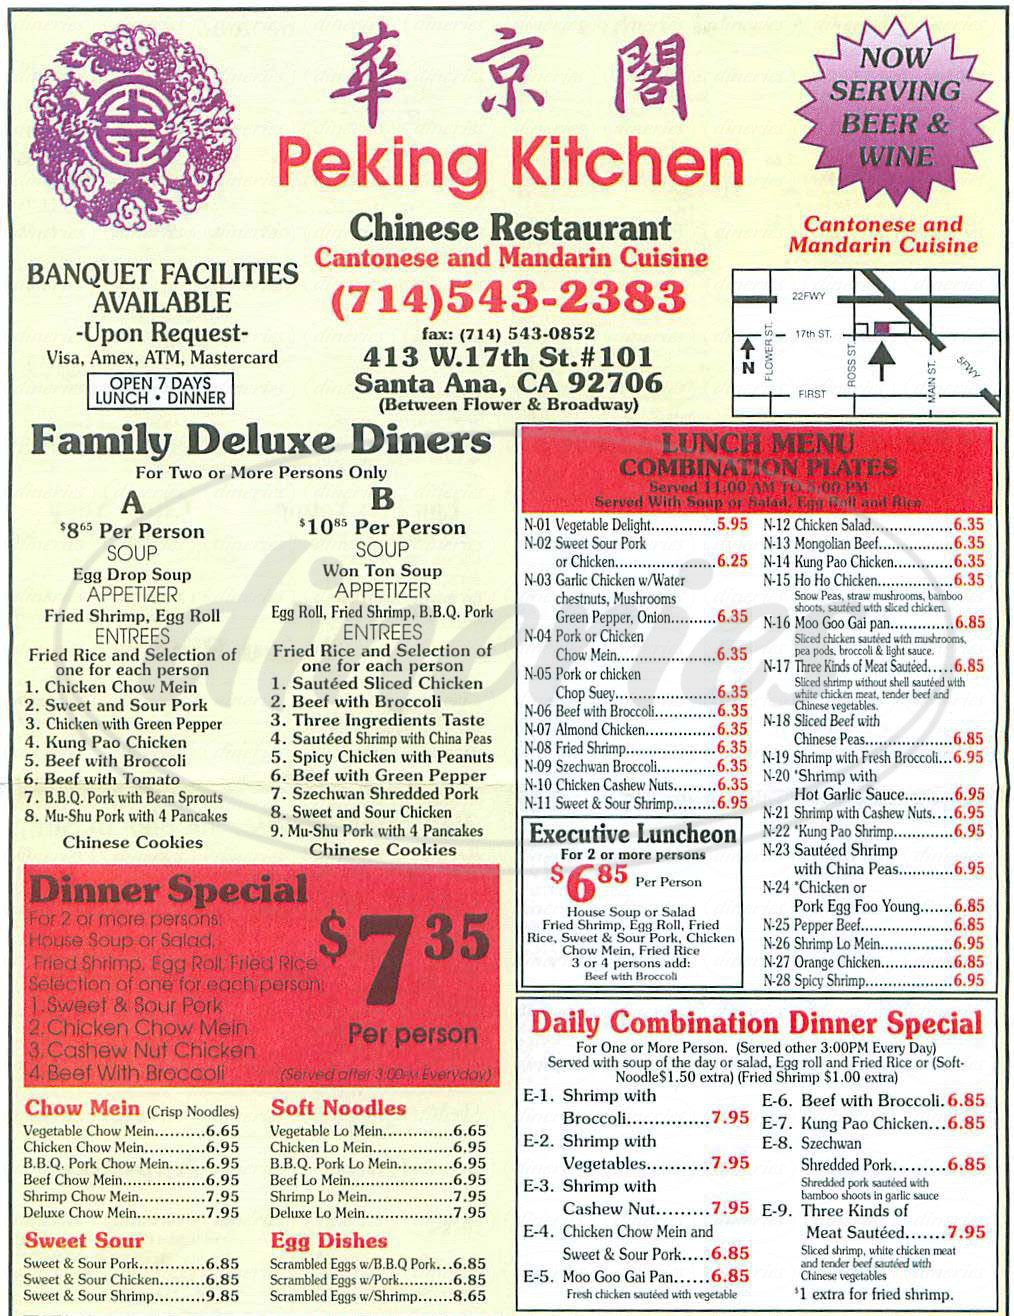 menu for Peking Kitchen